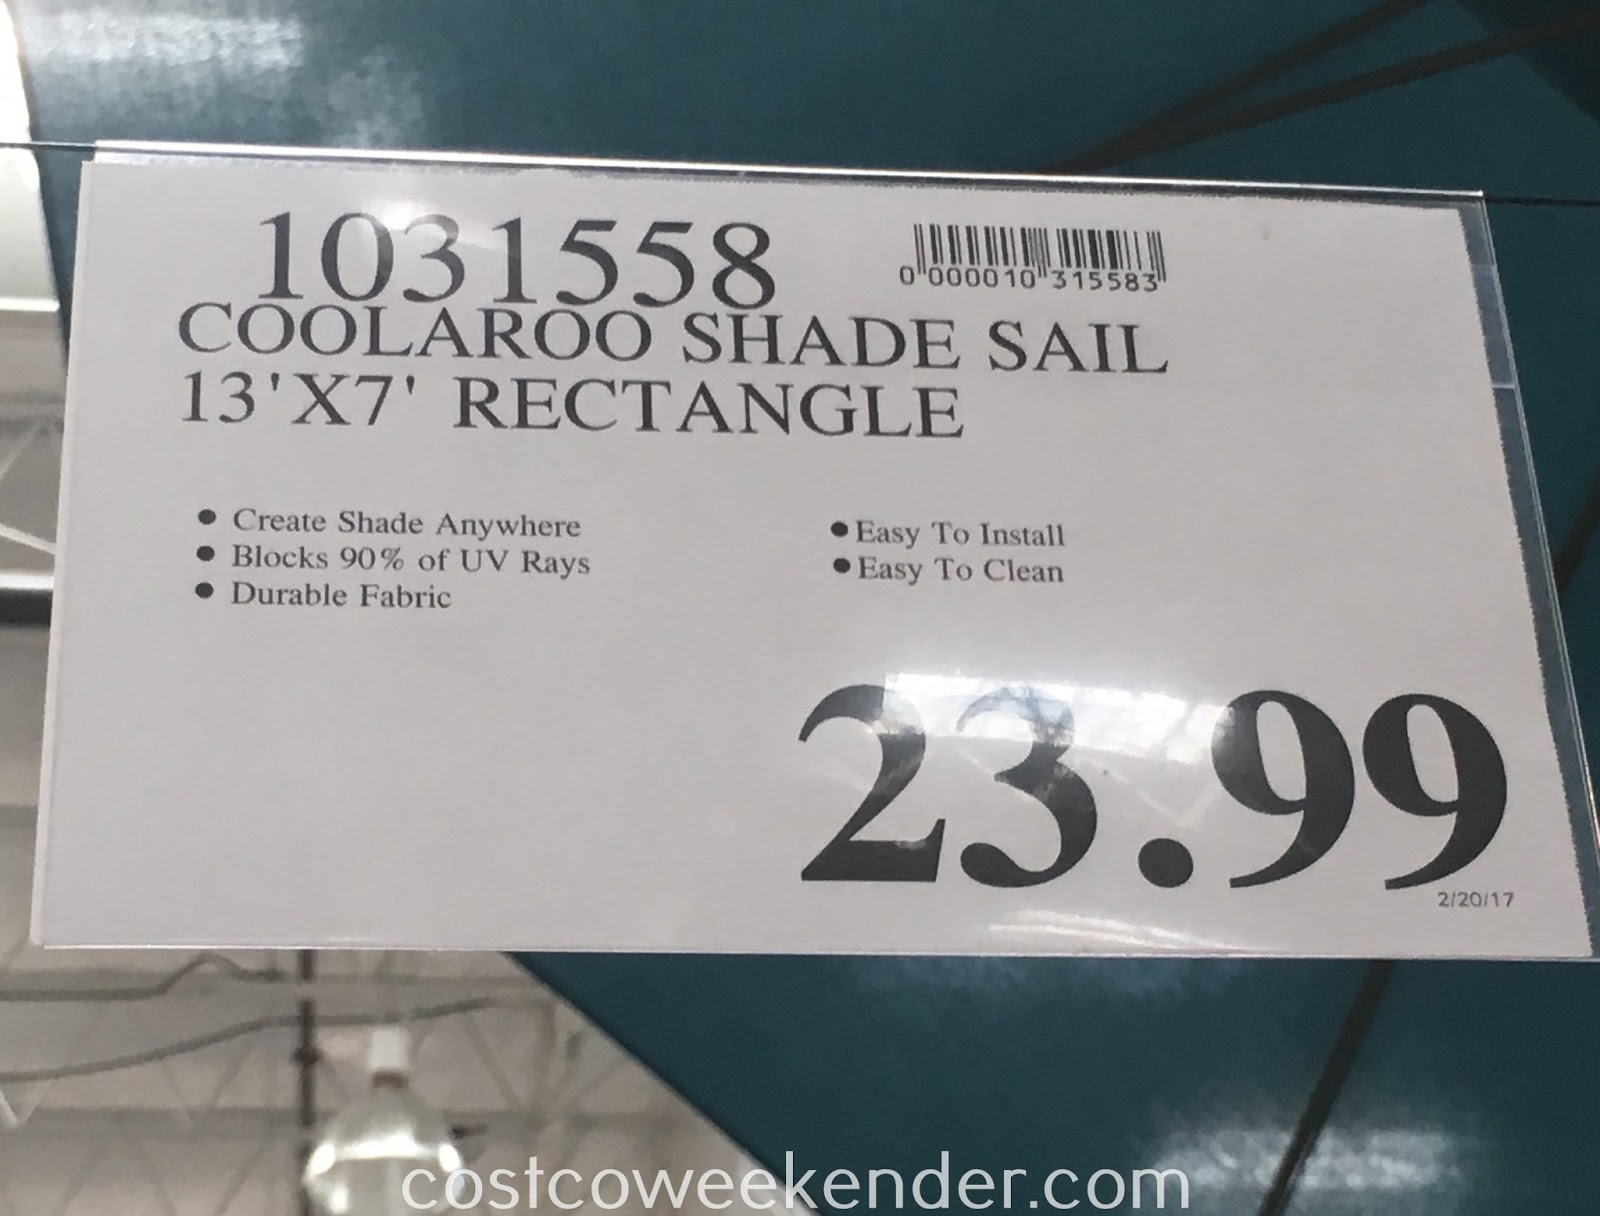 Deal for the Coolaroo Ready-to-Hang Shade Sail at Costco